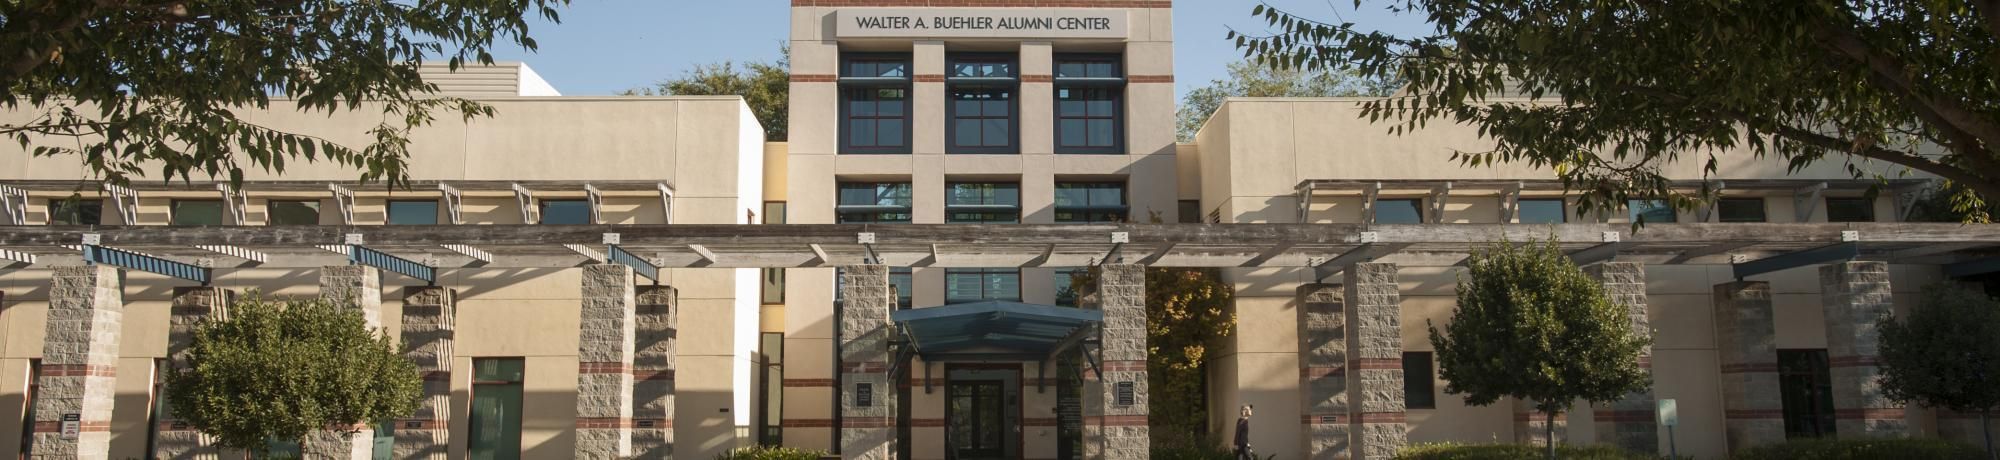 Walter A. Buehler Alumni Center